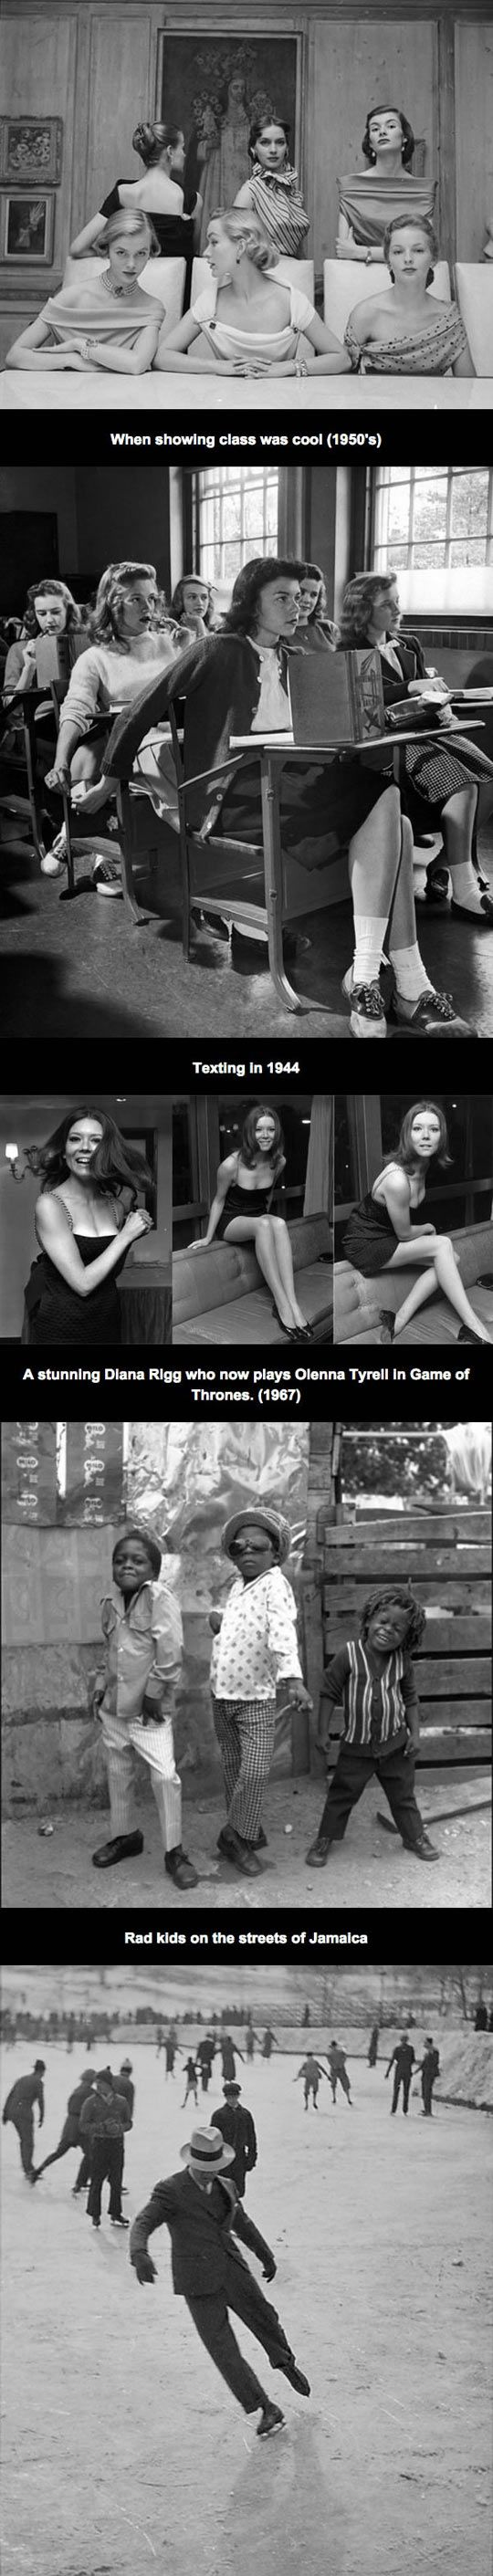 Badass Pictures From The 1950s